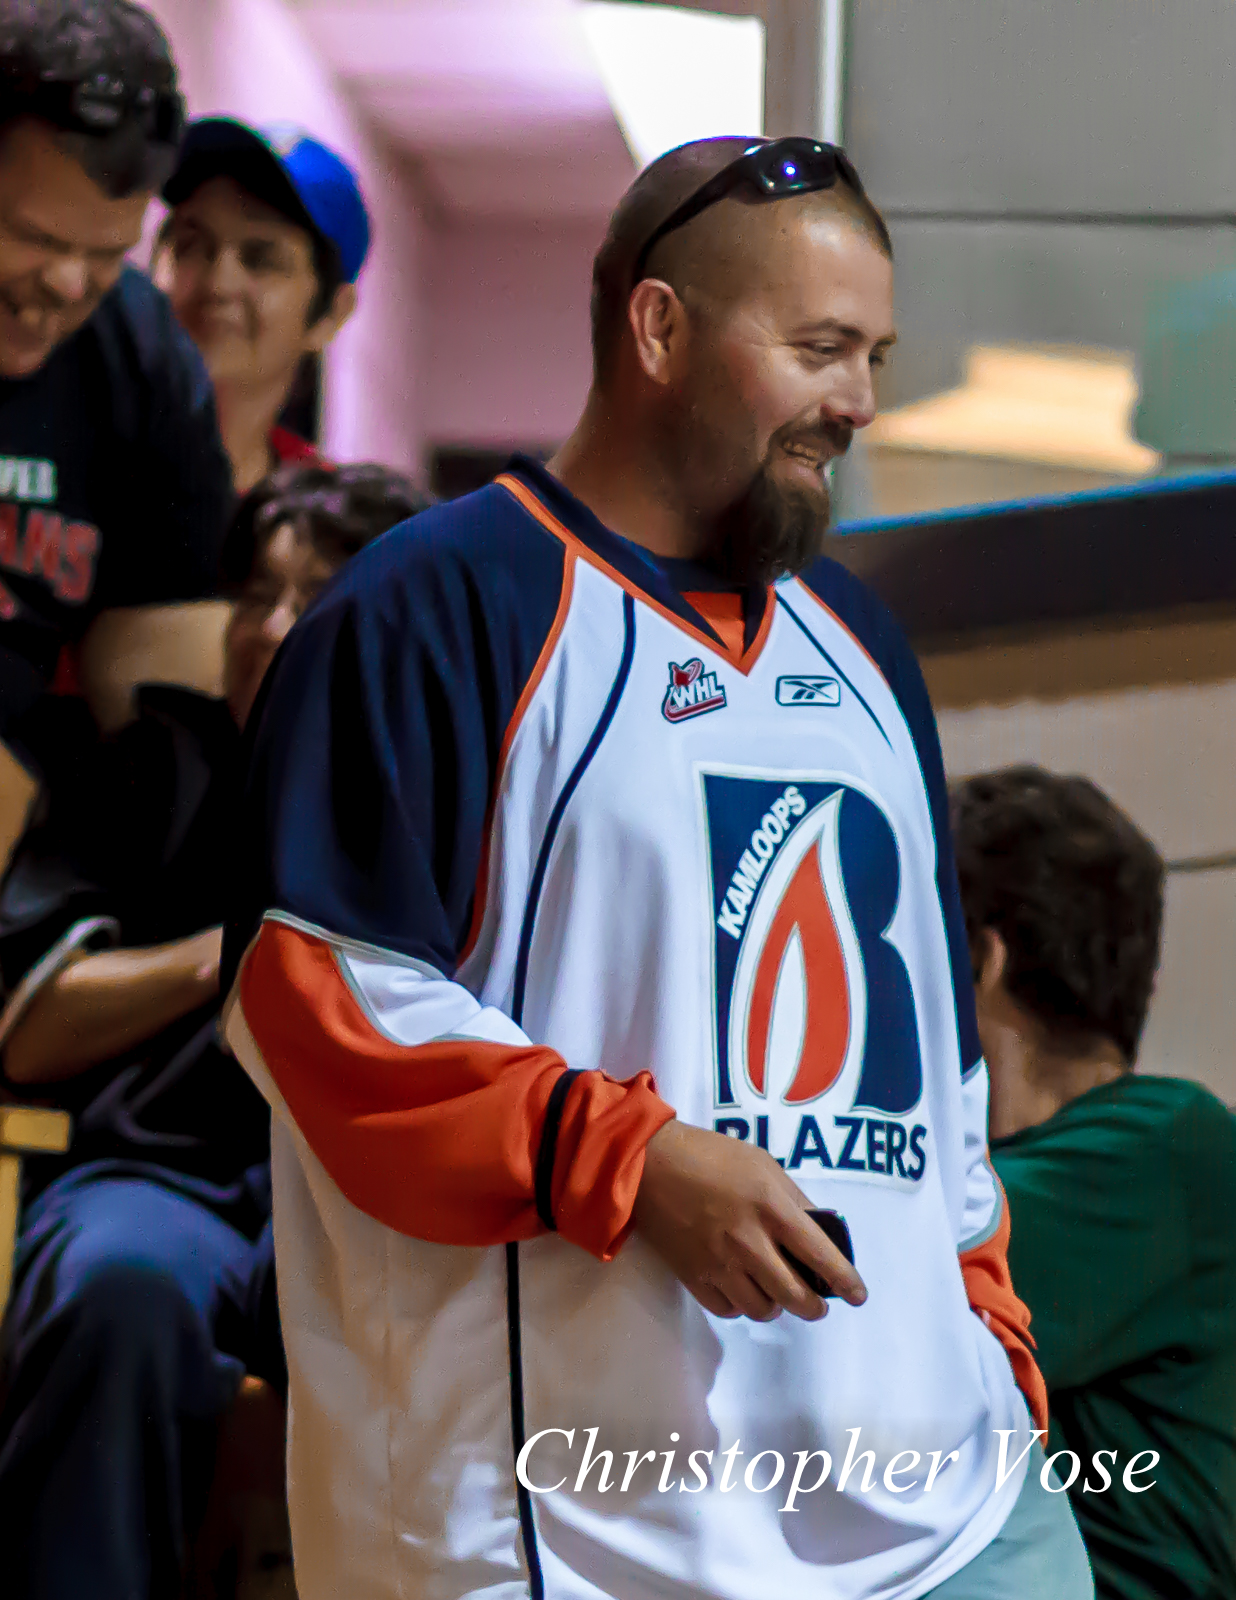 2014-09-07 Kamloops Blazers Supporter.jpg